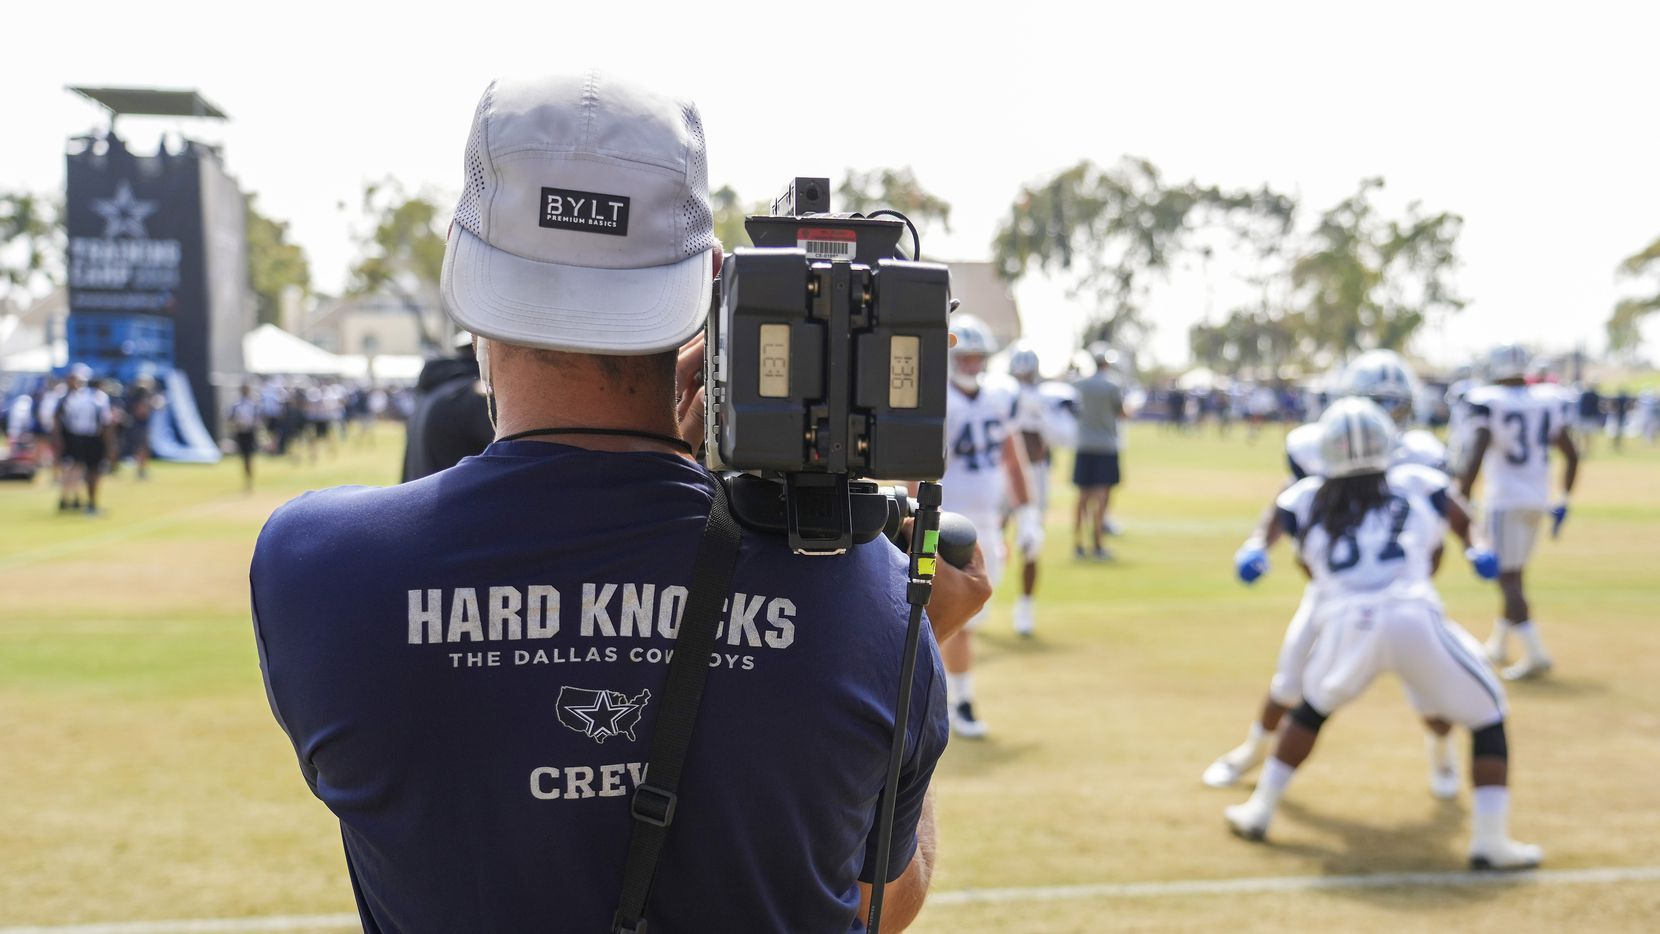 A crew from HBOs Hard Knocks captures Dallas Cowboys running back in a drill during a joint practice with the Los Angeles Rams at training camp on Saturday, Aug. 7, 2021, in Oxnard, Calif.